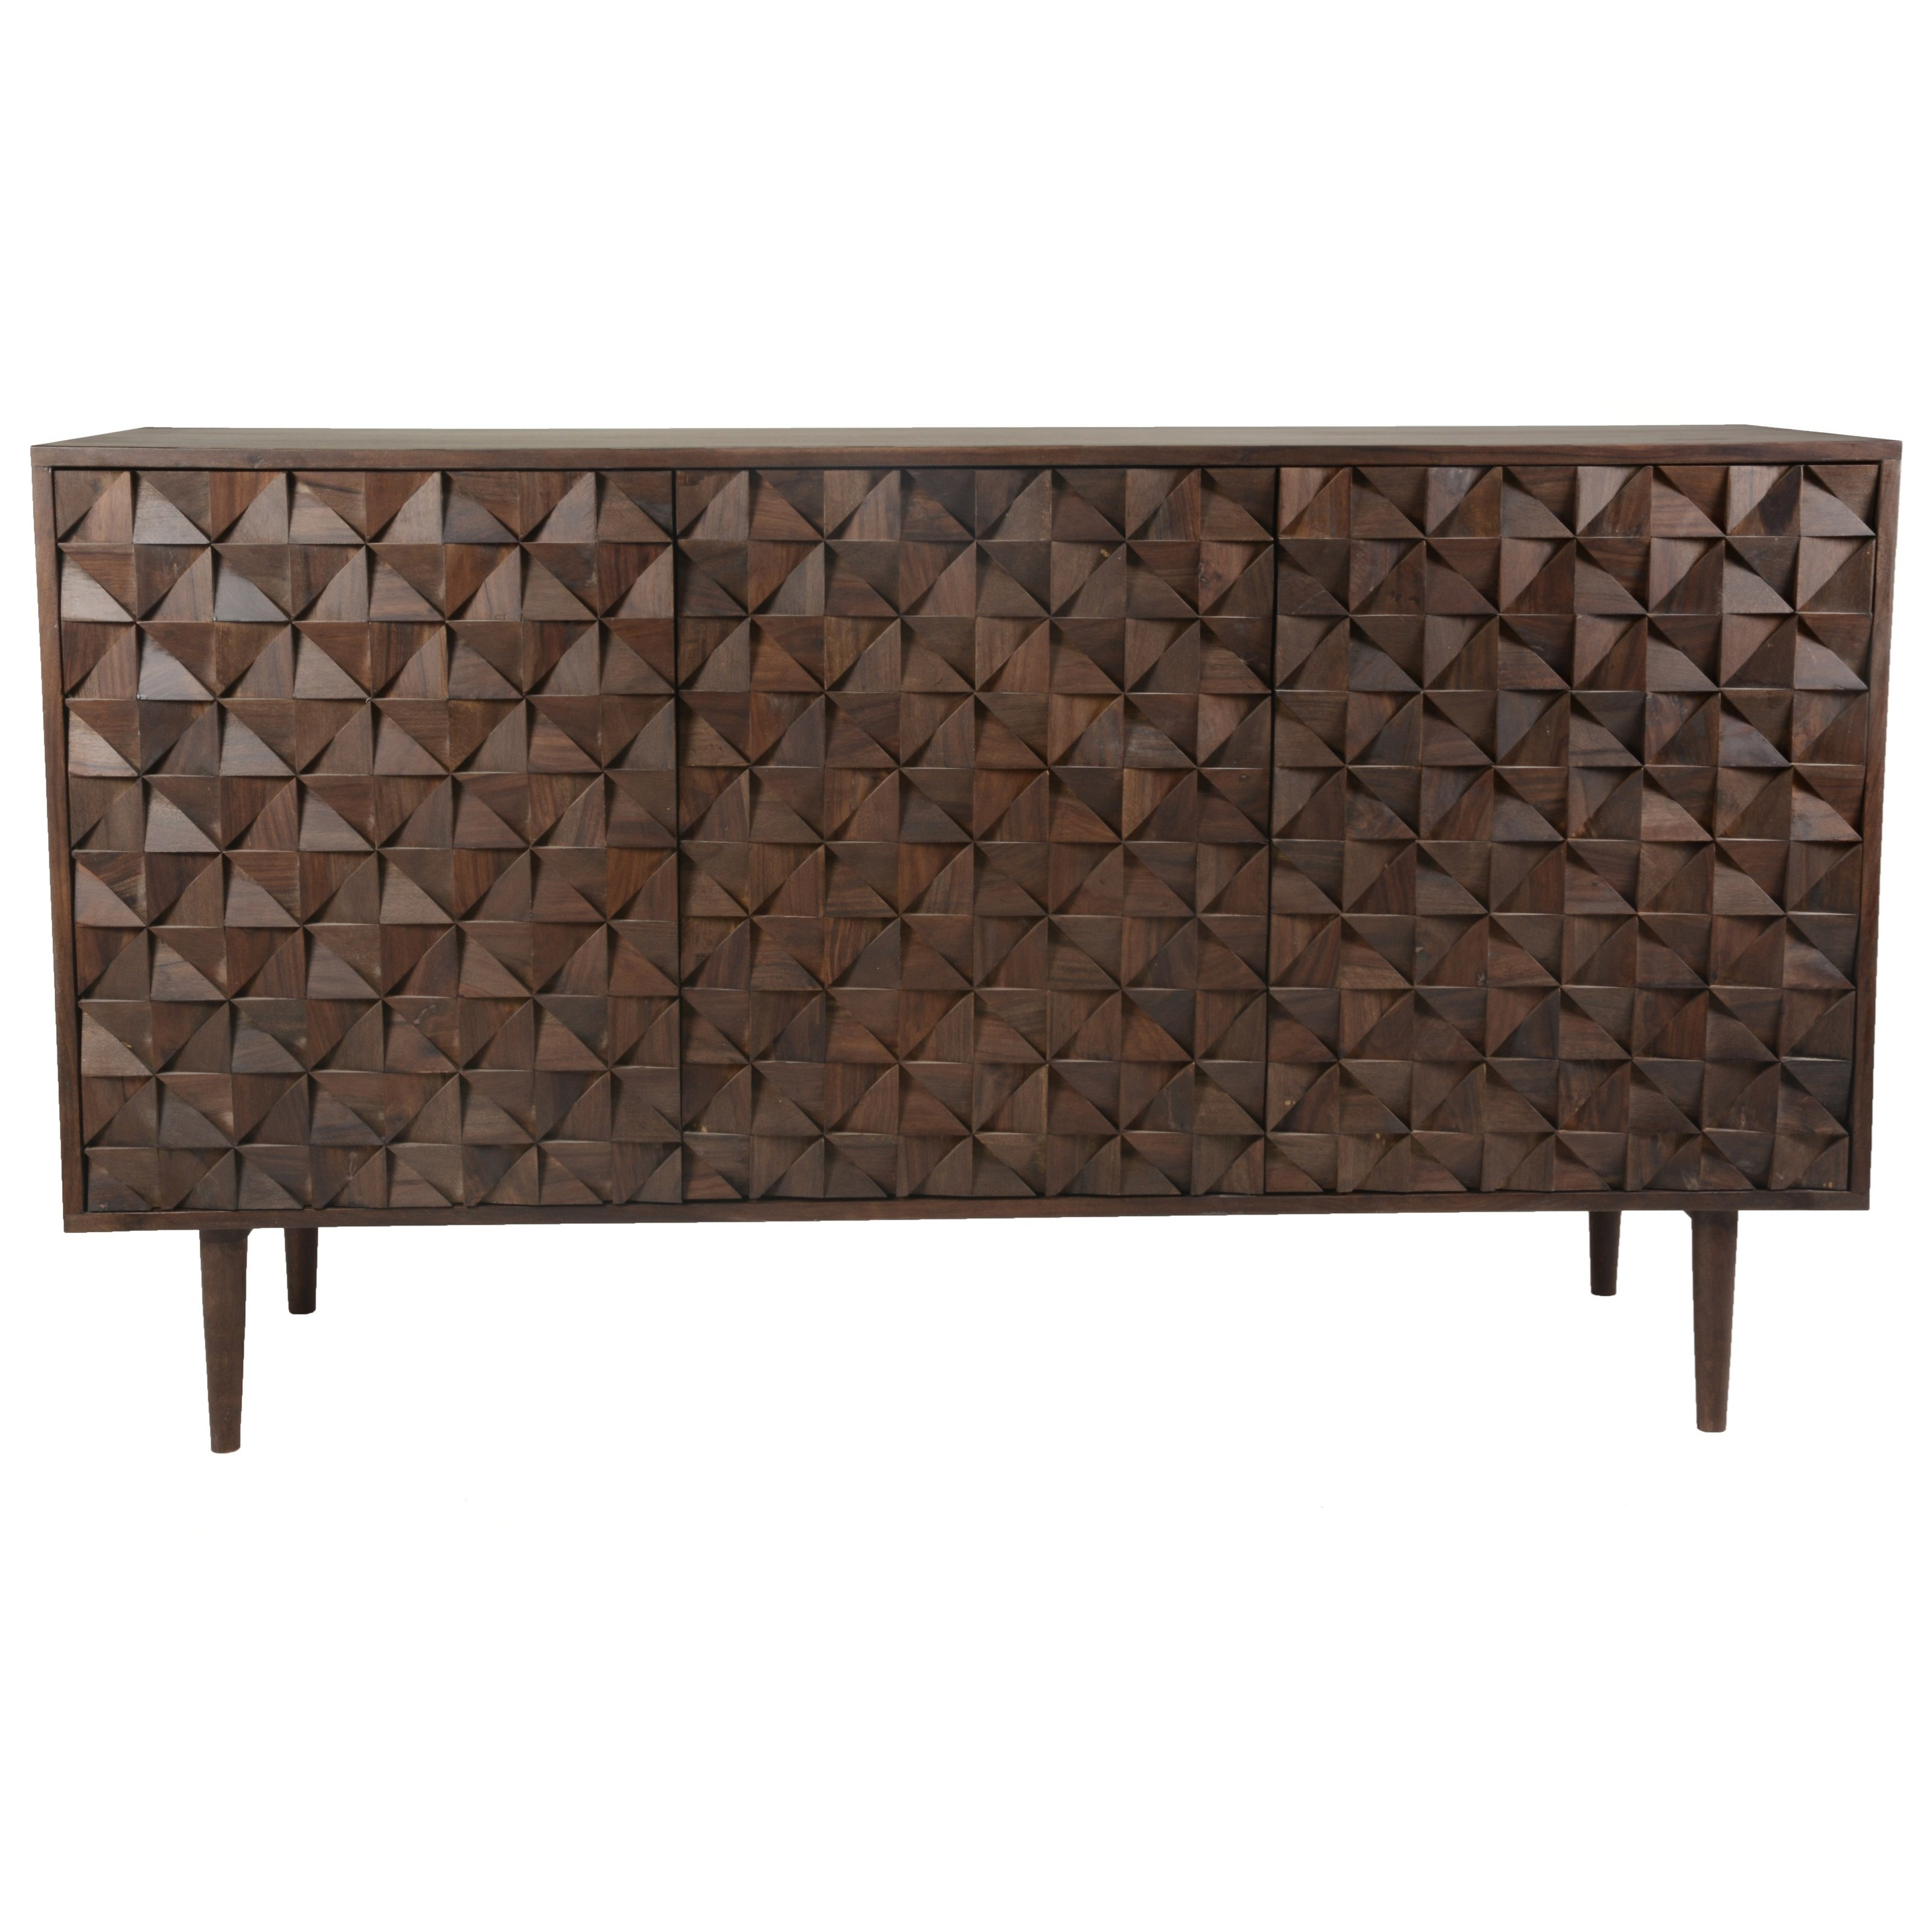 Pablo  3 Door Sideboard  by Moe's Home Collection at Stoney Creek Furniture